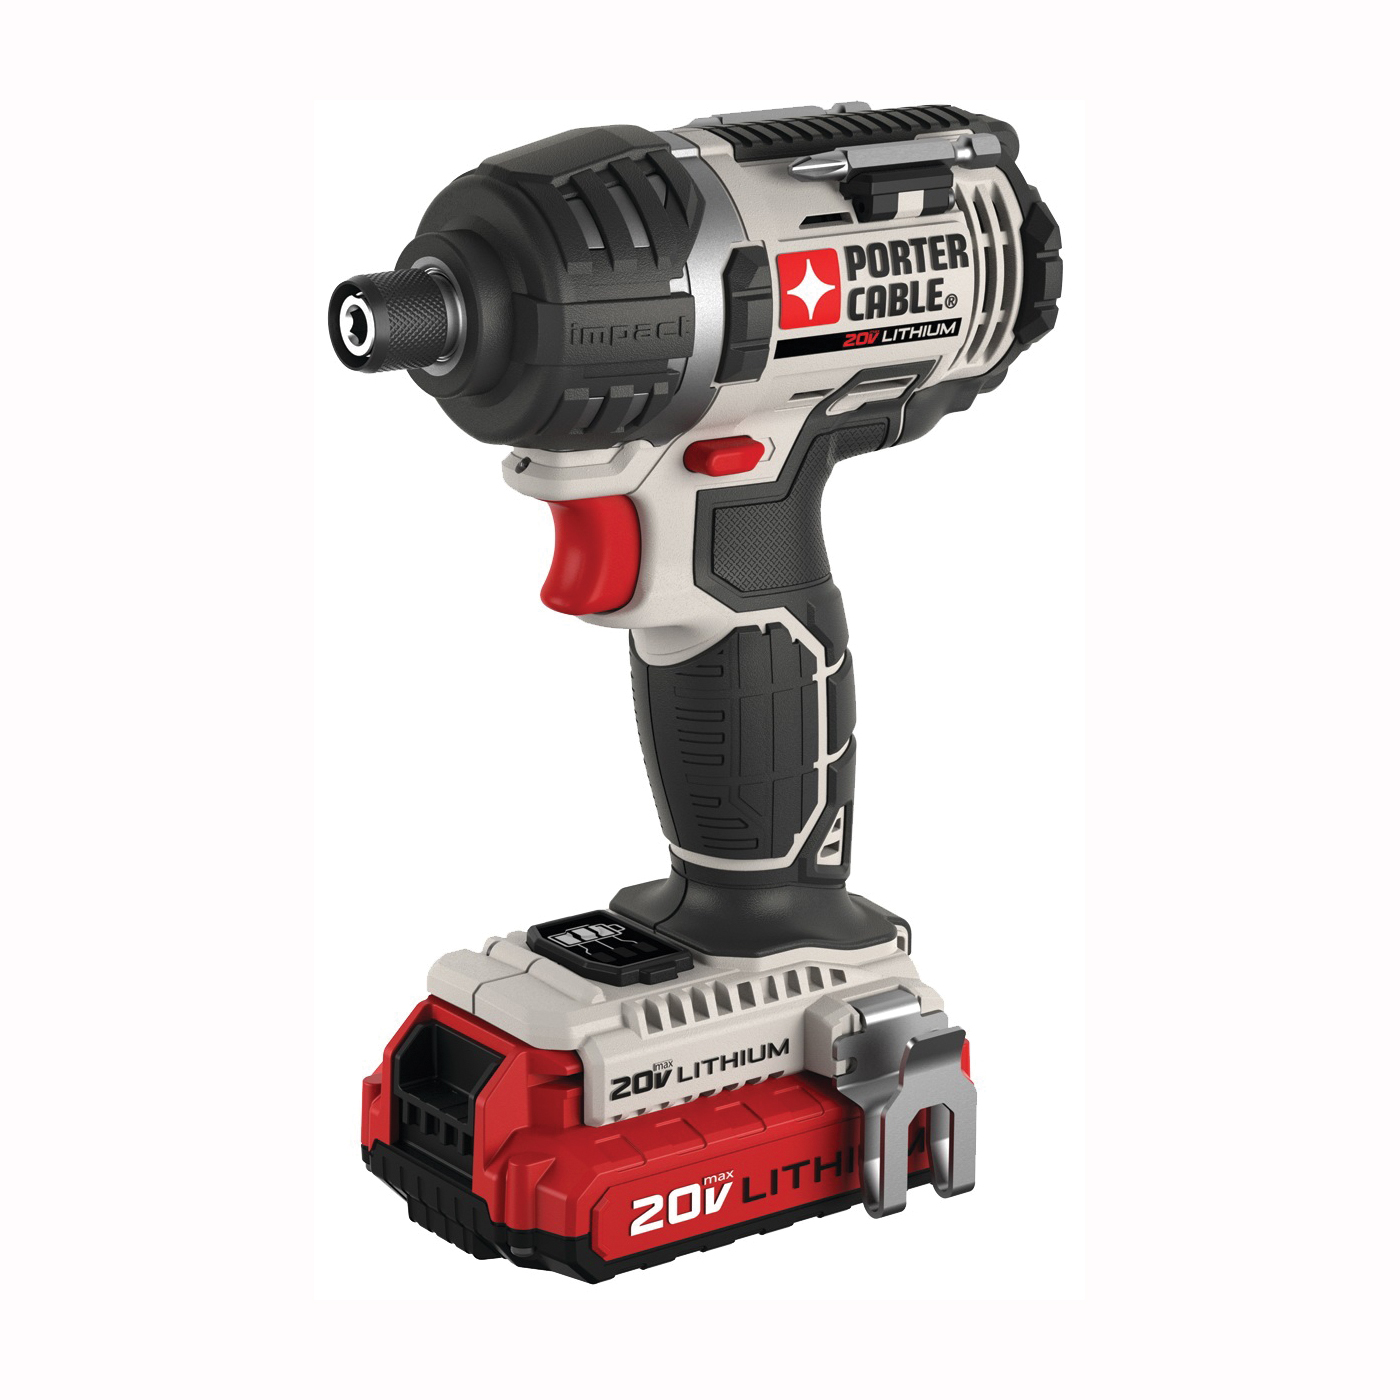 Picture of PORTER-CABLE PCCK640LB Impact Driver Kit, Kit, 20 V Battery, 1.5 Ah, 1/4 in Drive, Hex Drive, 3100 ipm IPM